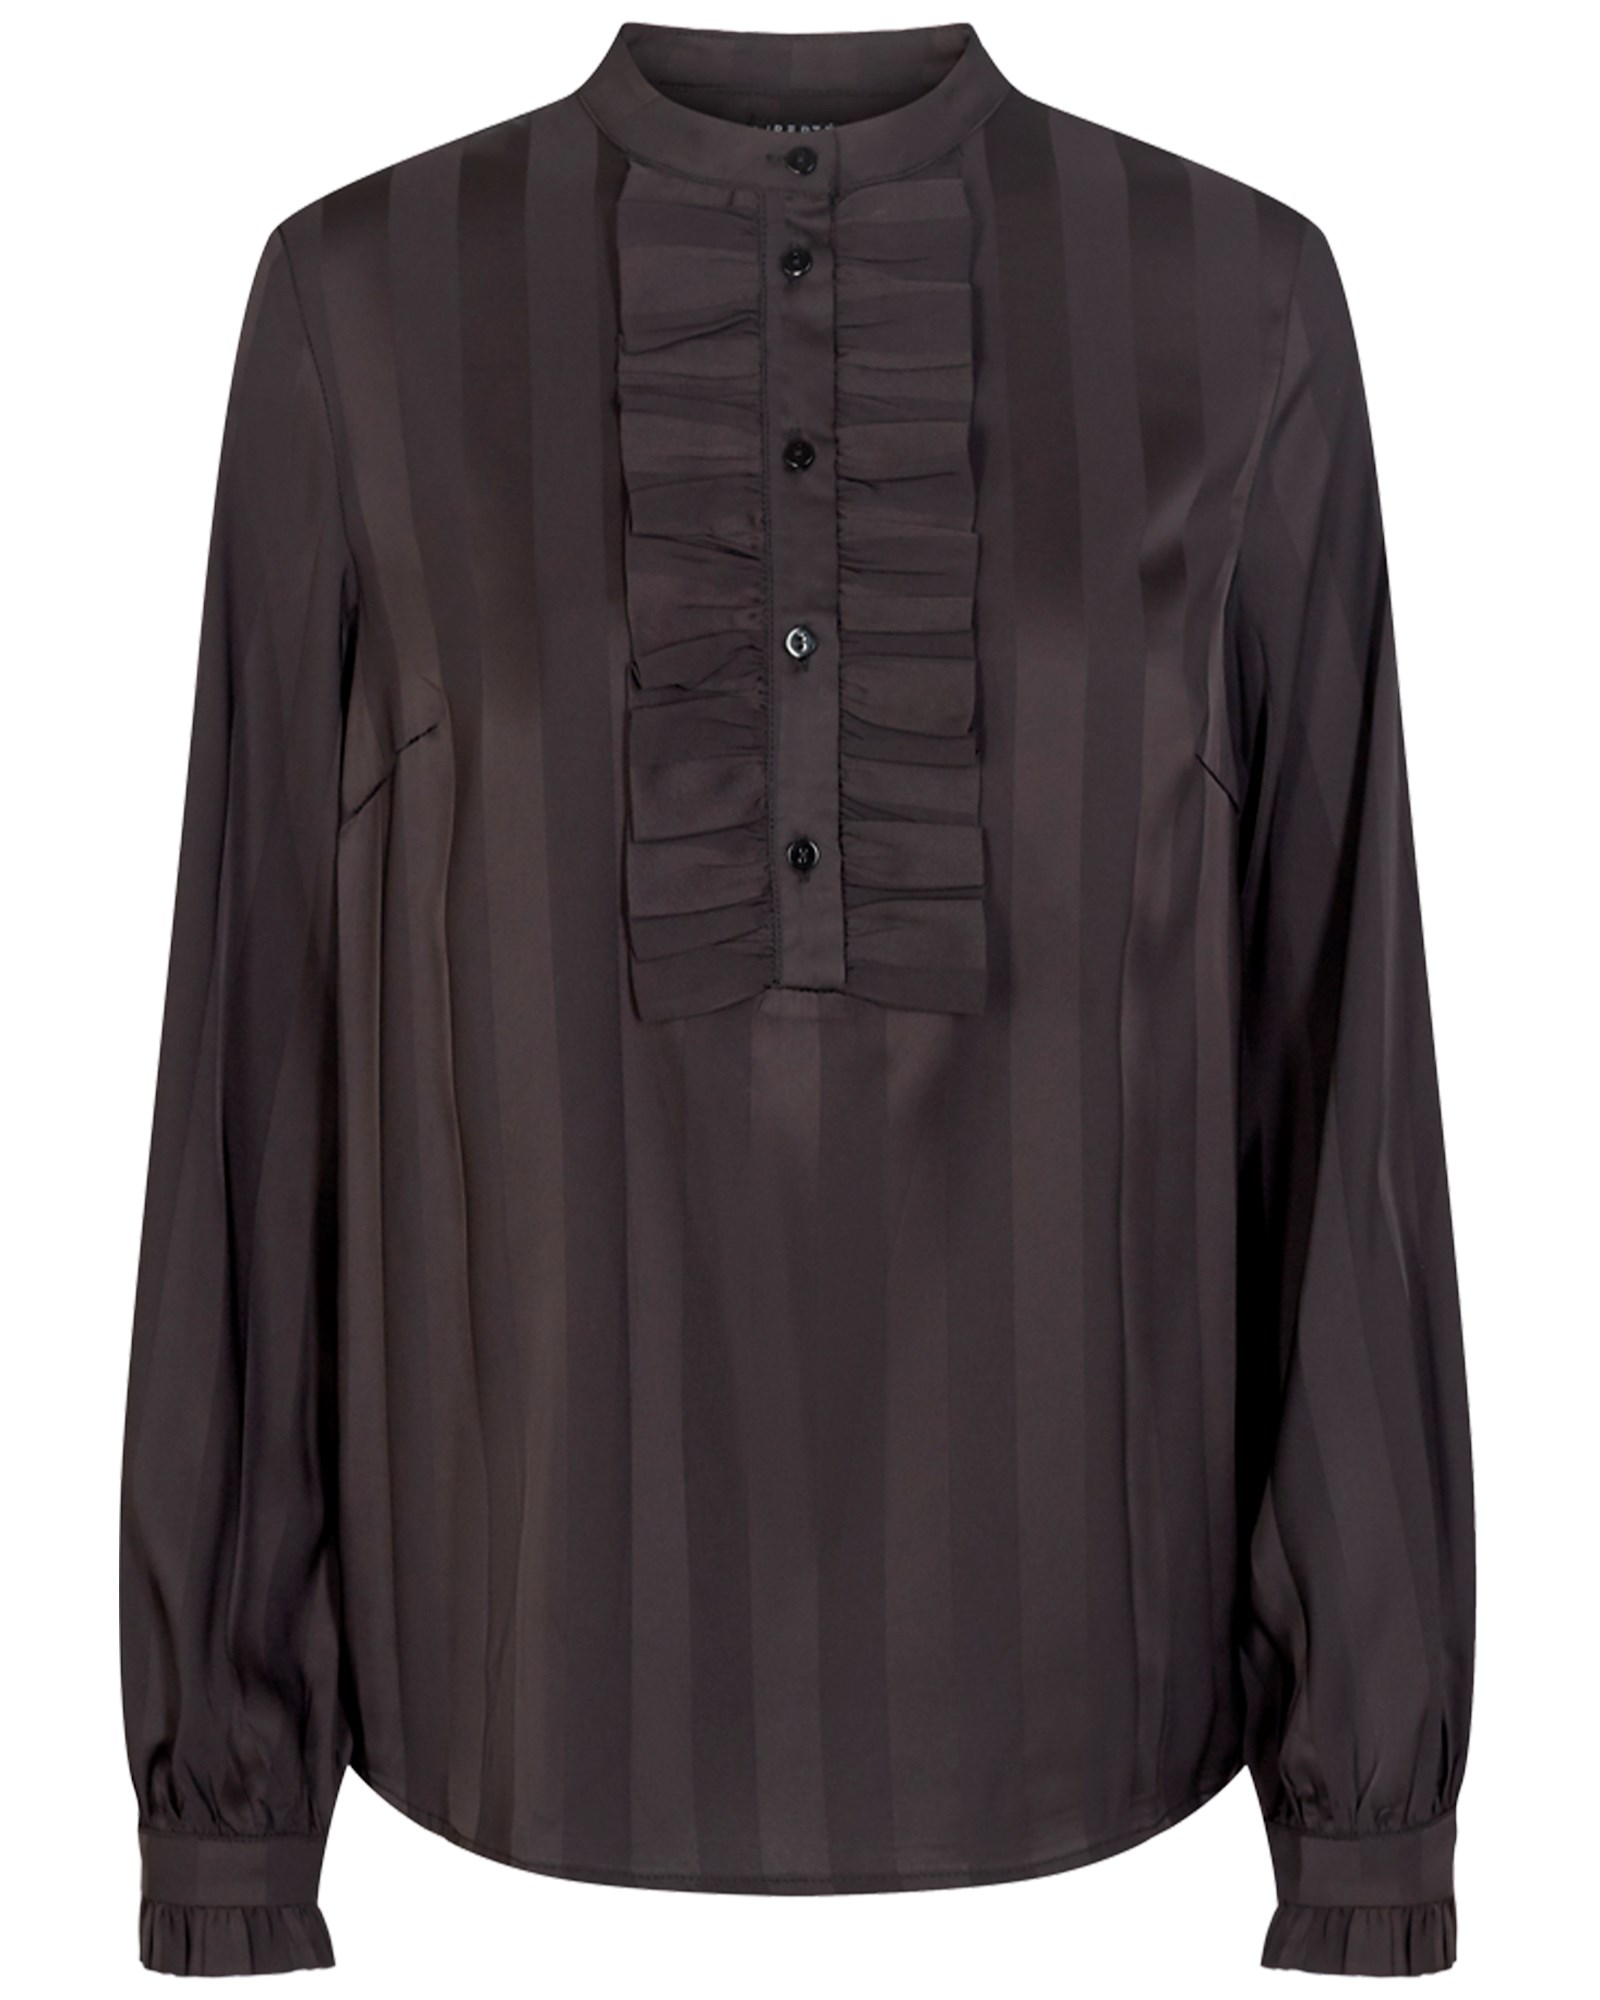 Mia blouse black